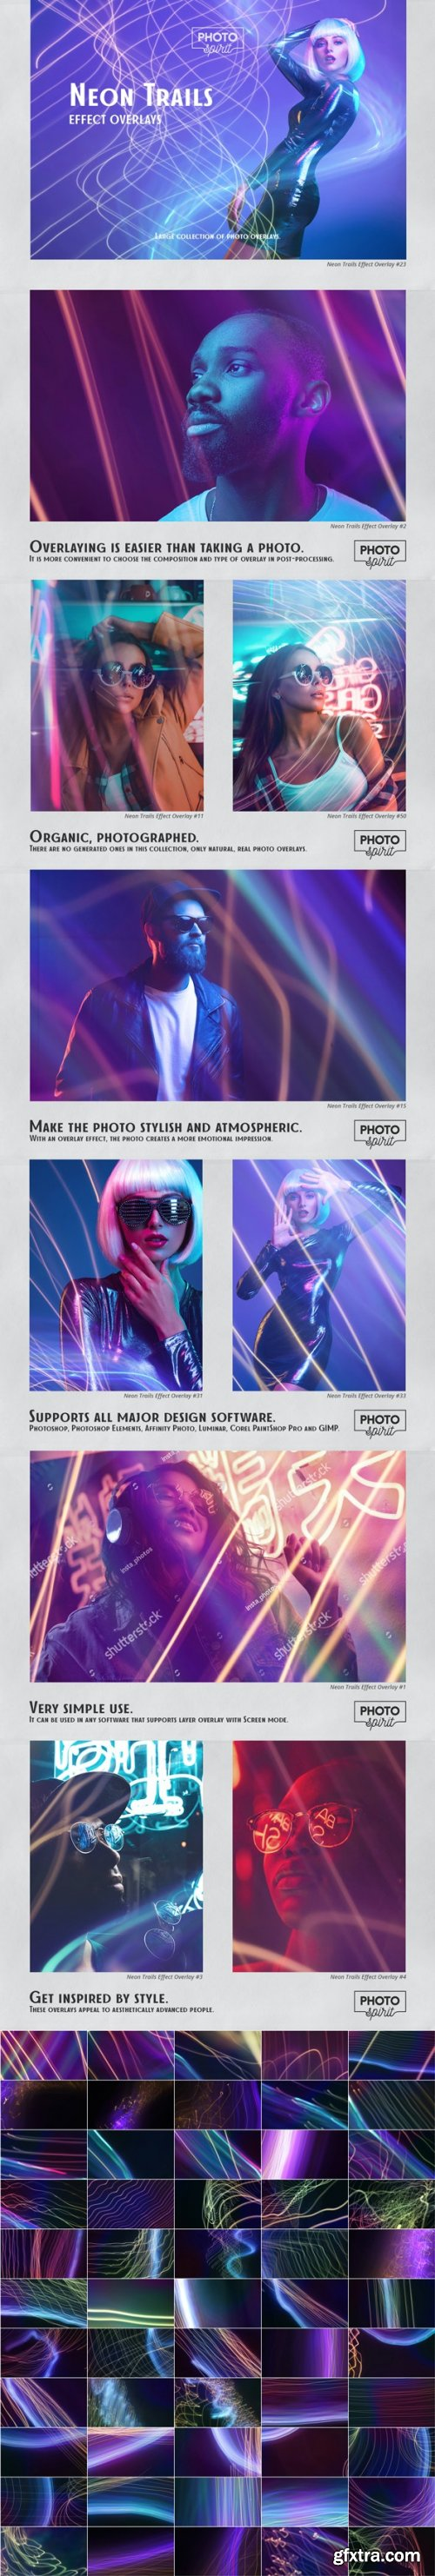 GraphicRiver - Neon Trails Overlays Effect 33110455